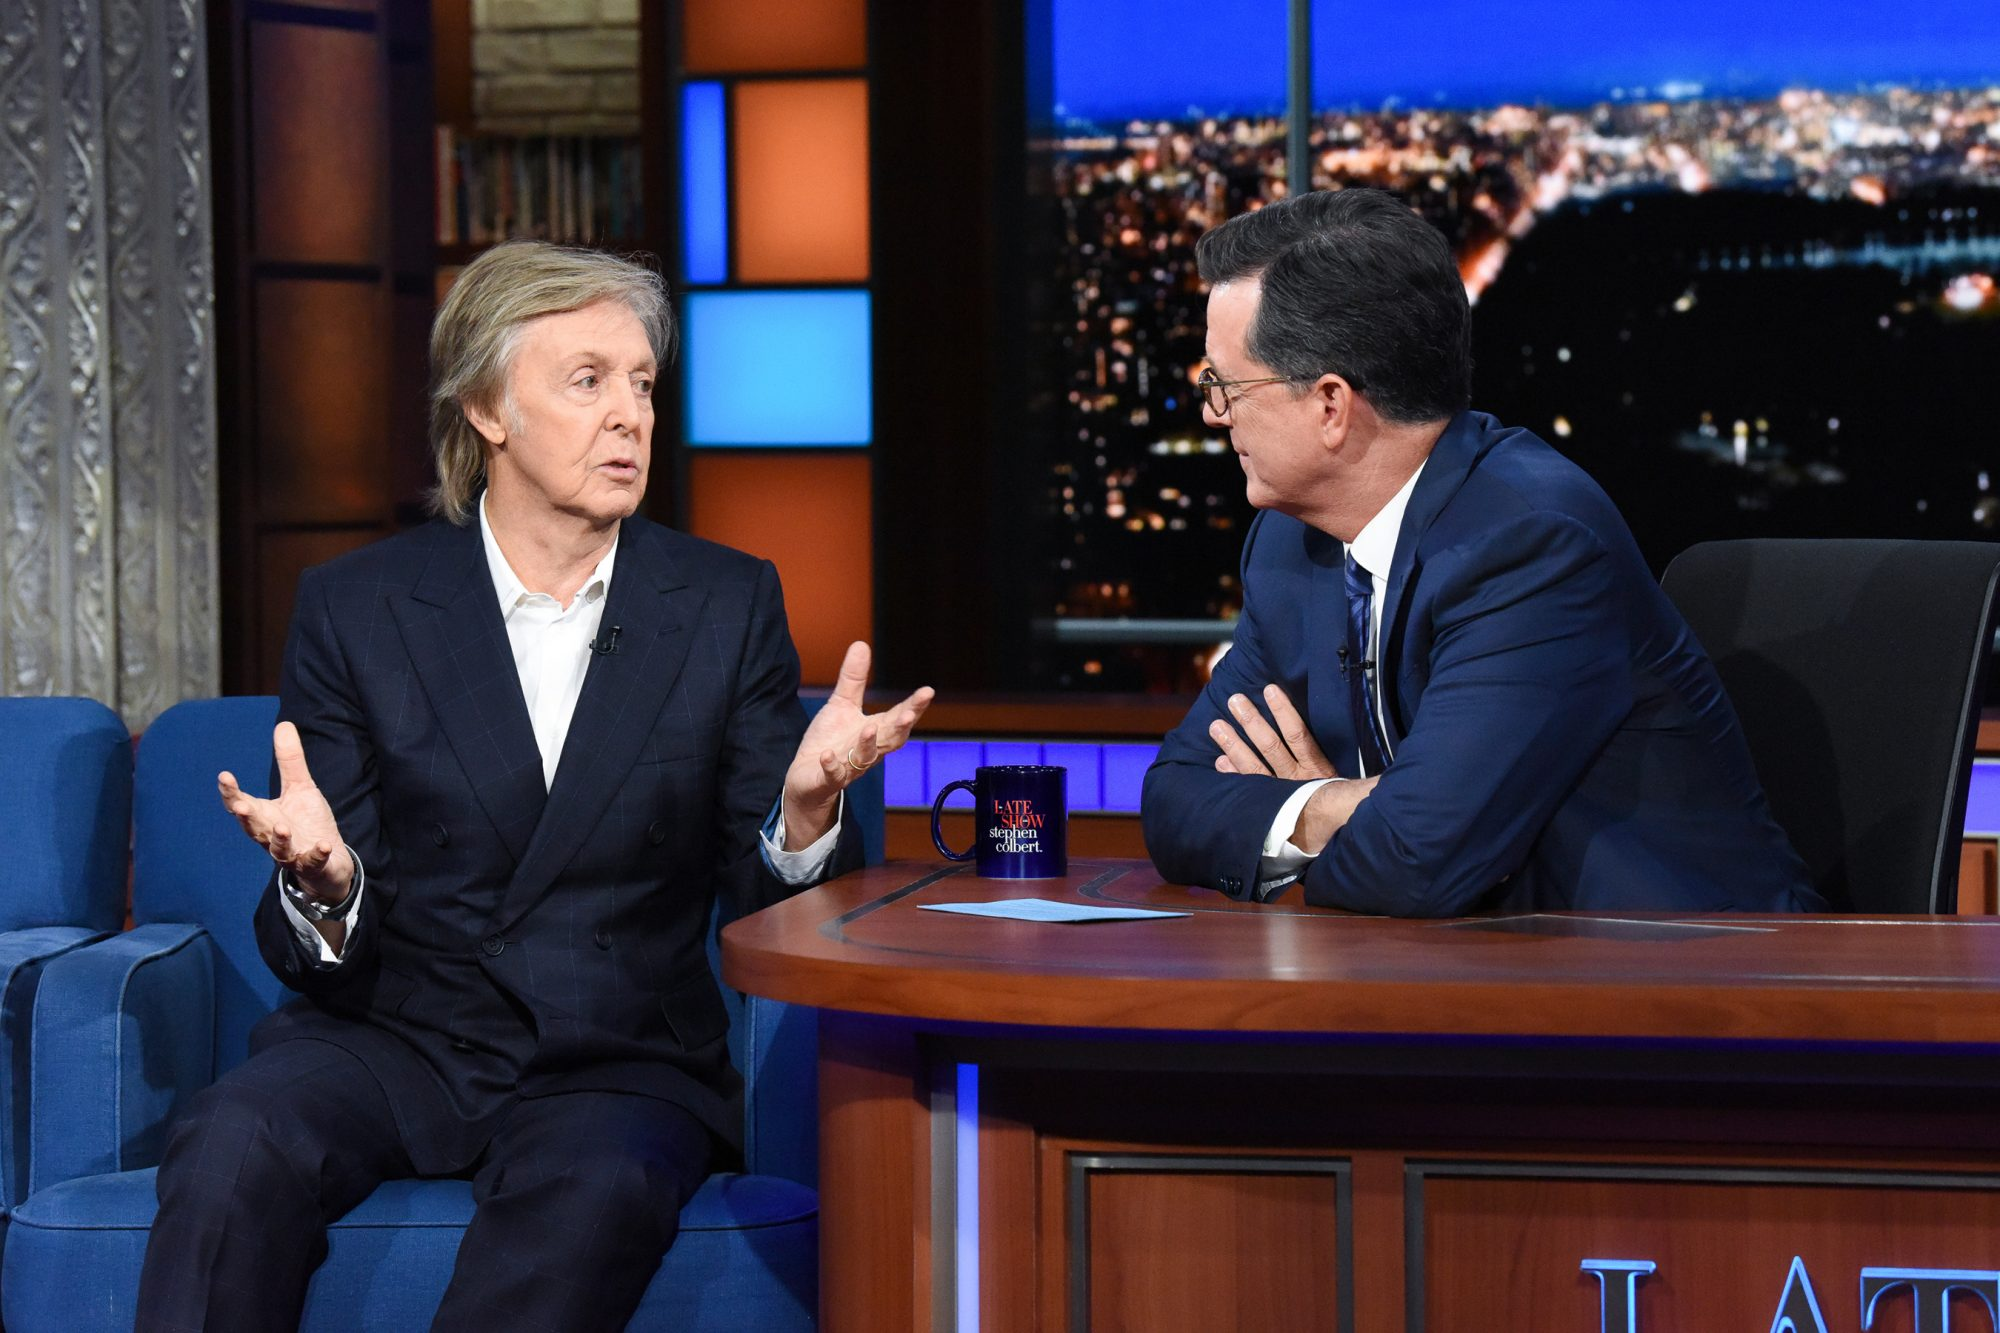 The Late Show with Stephen Colbert and guest Paul McCartney